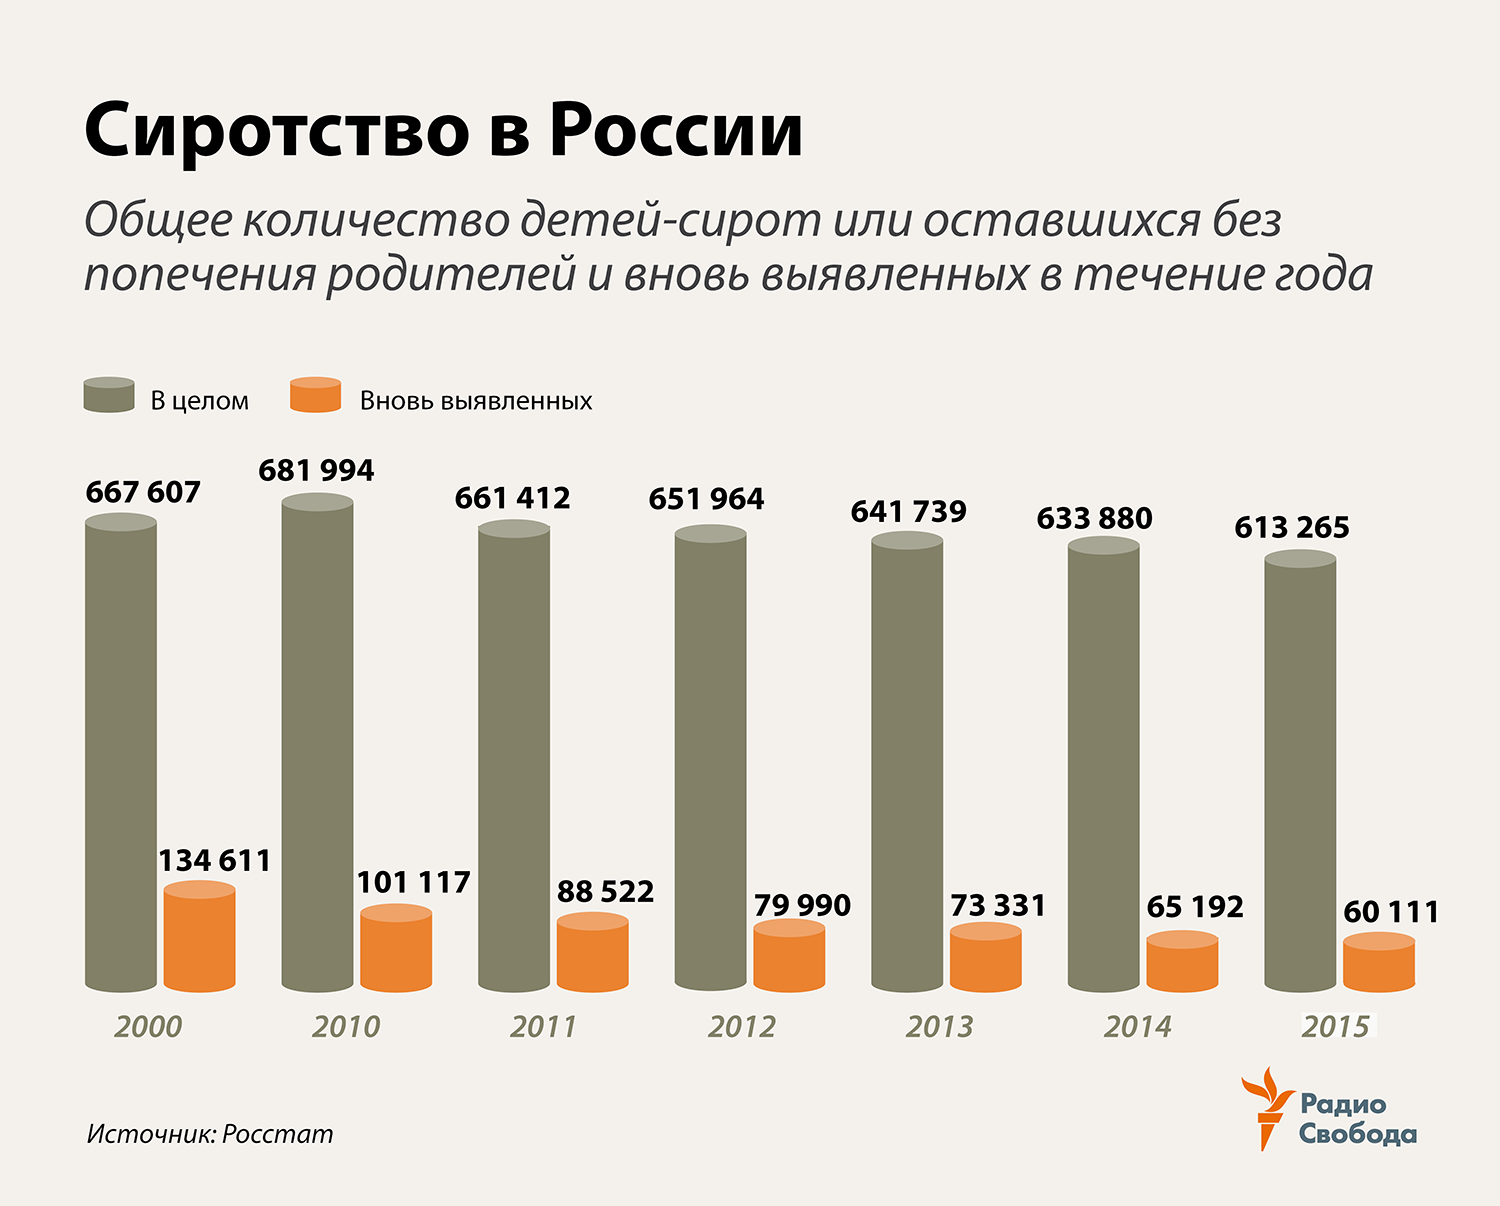 Russia-Factograph-Orphans-Total and New-2010-2015